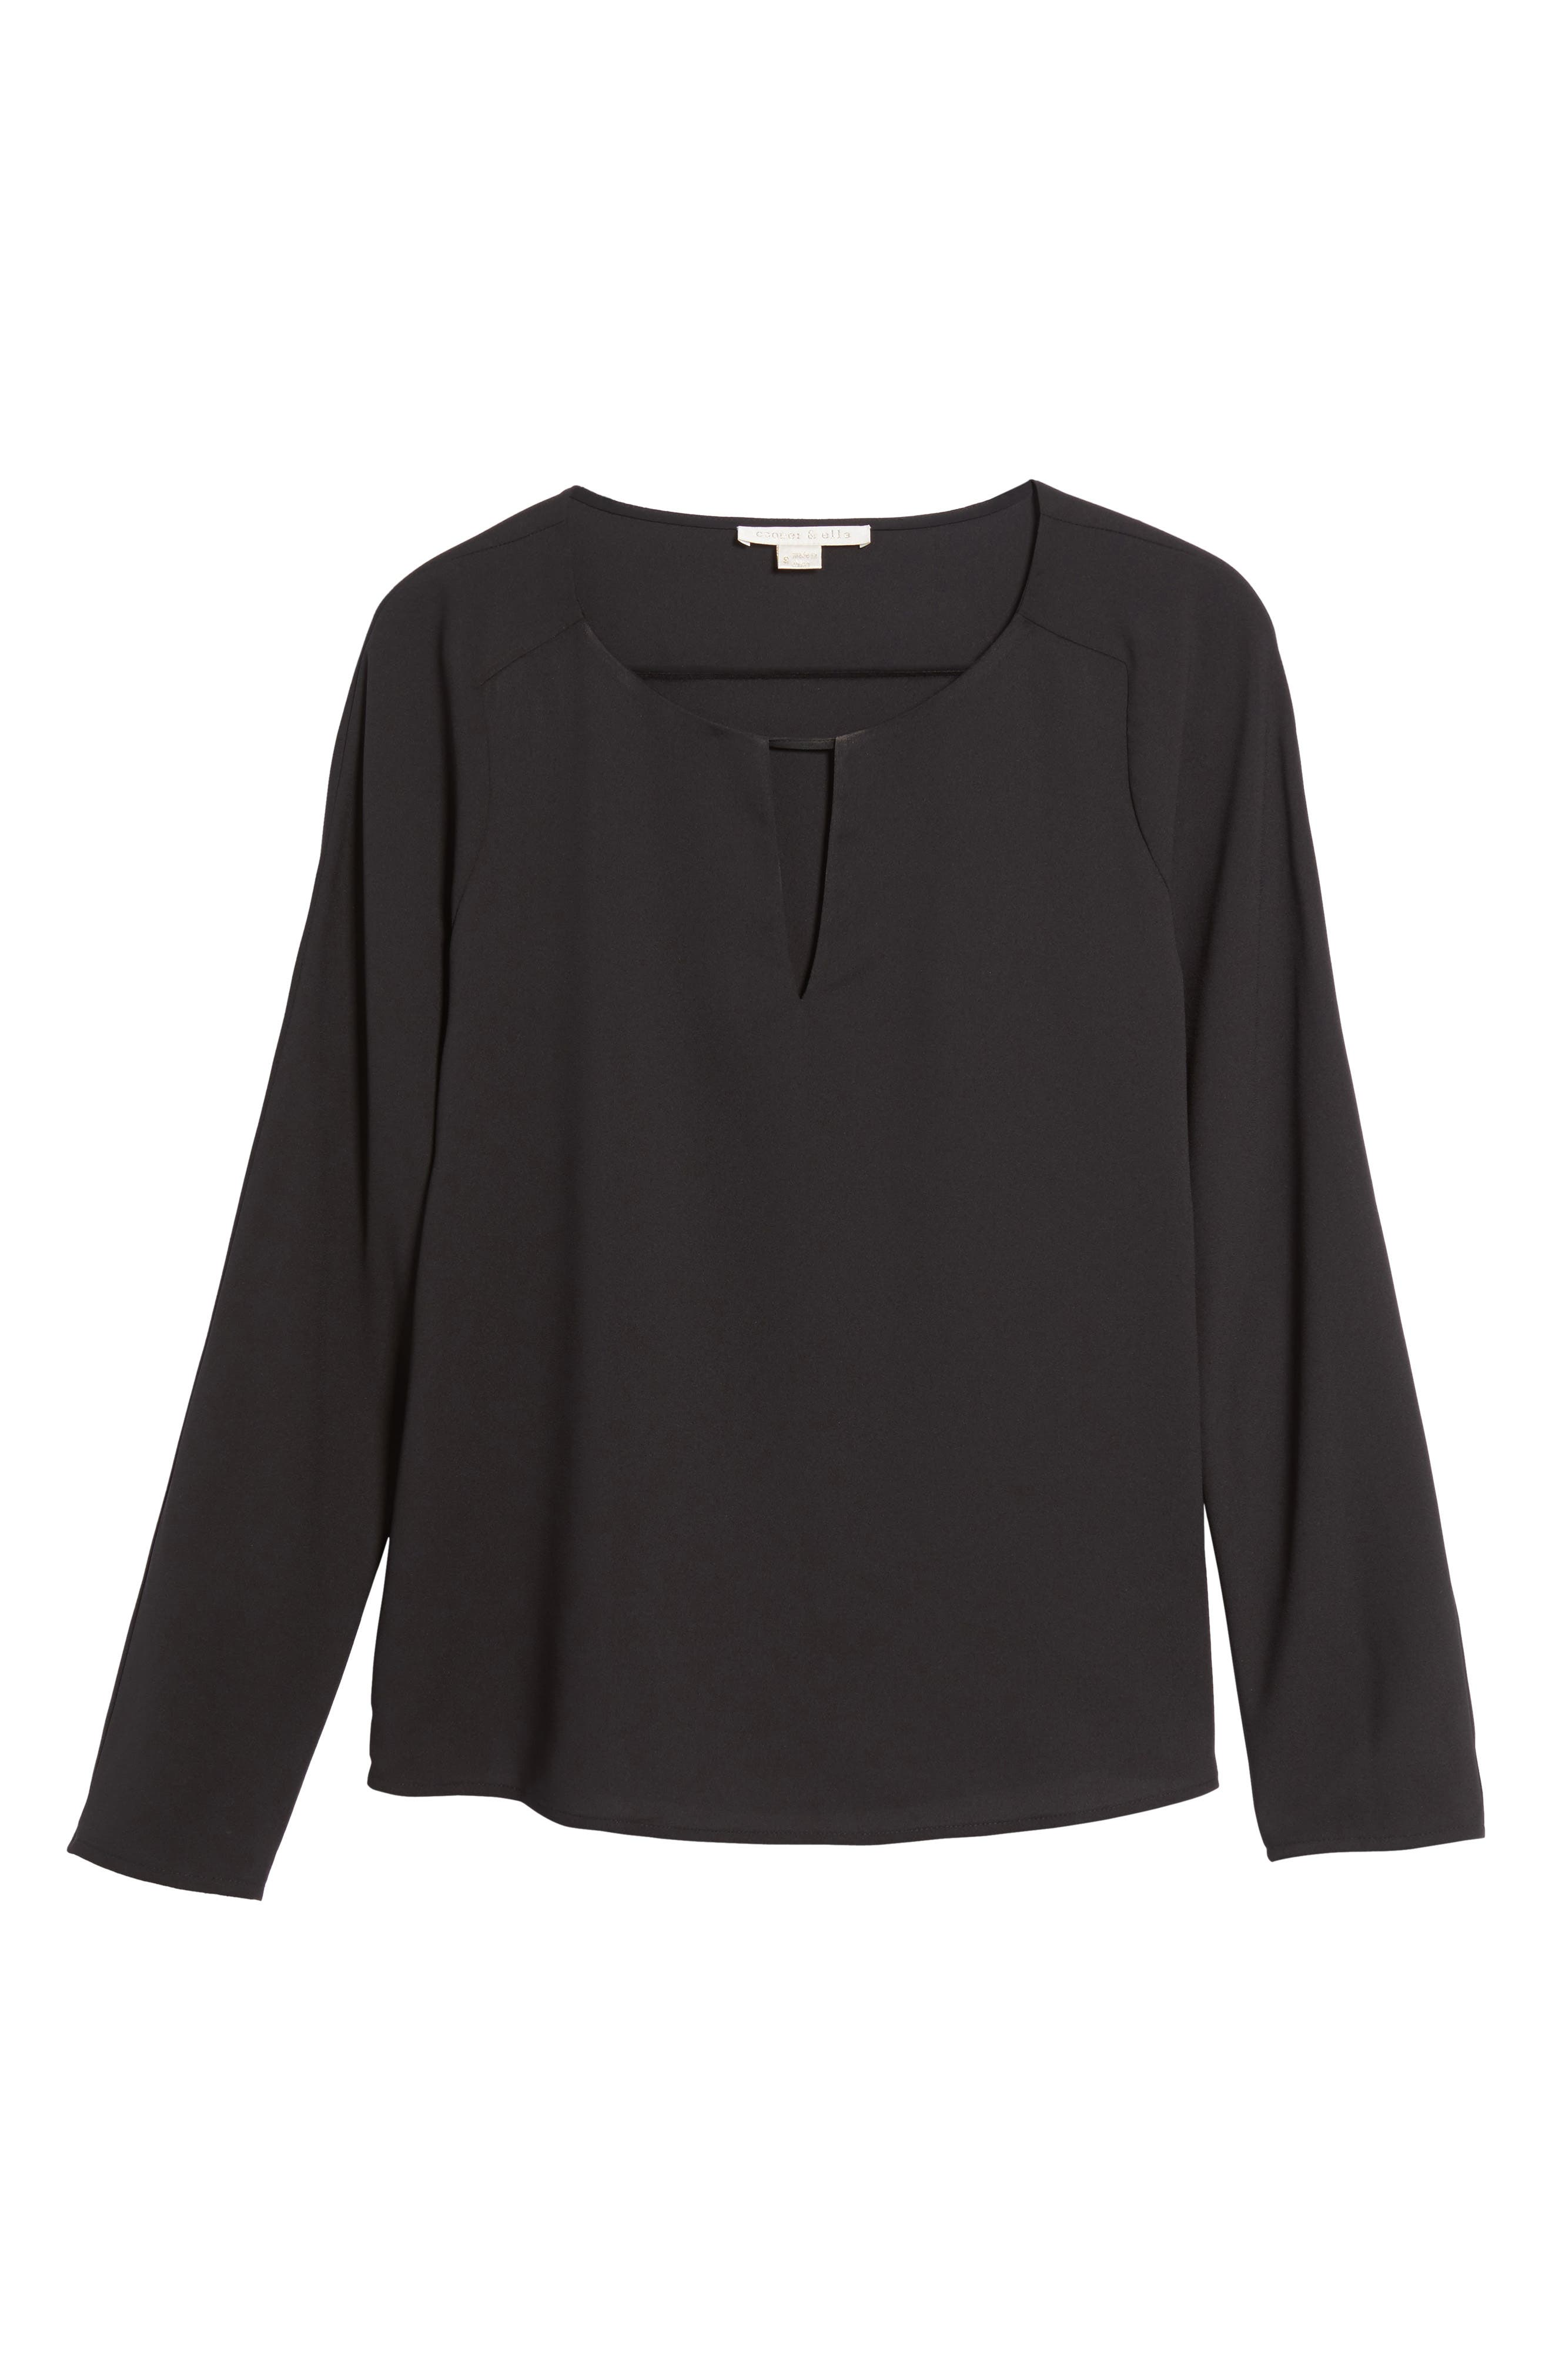 Selma Ruffle Blouse,                             Alternate thumbnail 6, color,                             001